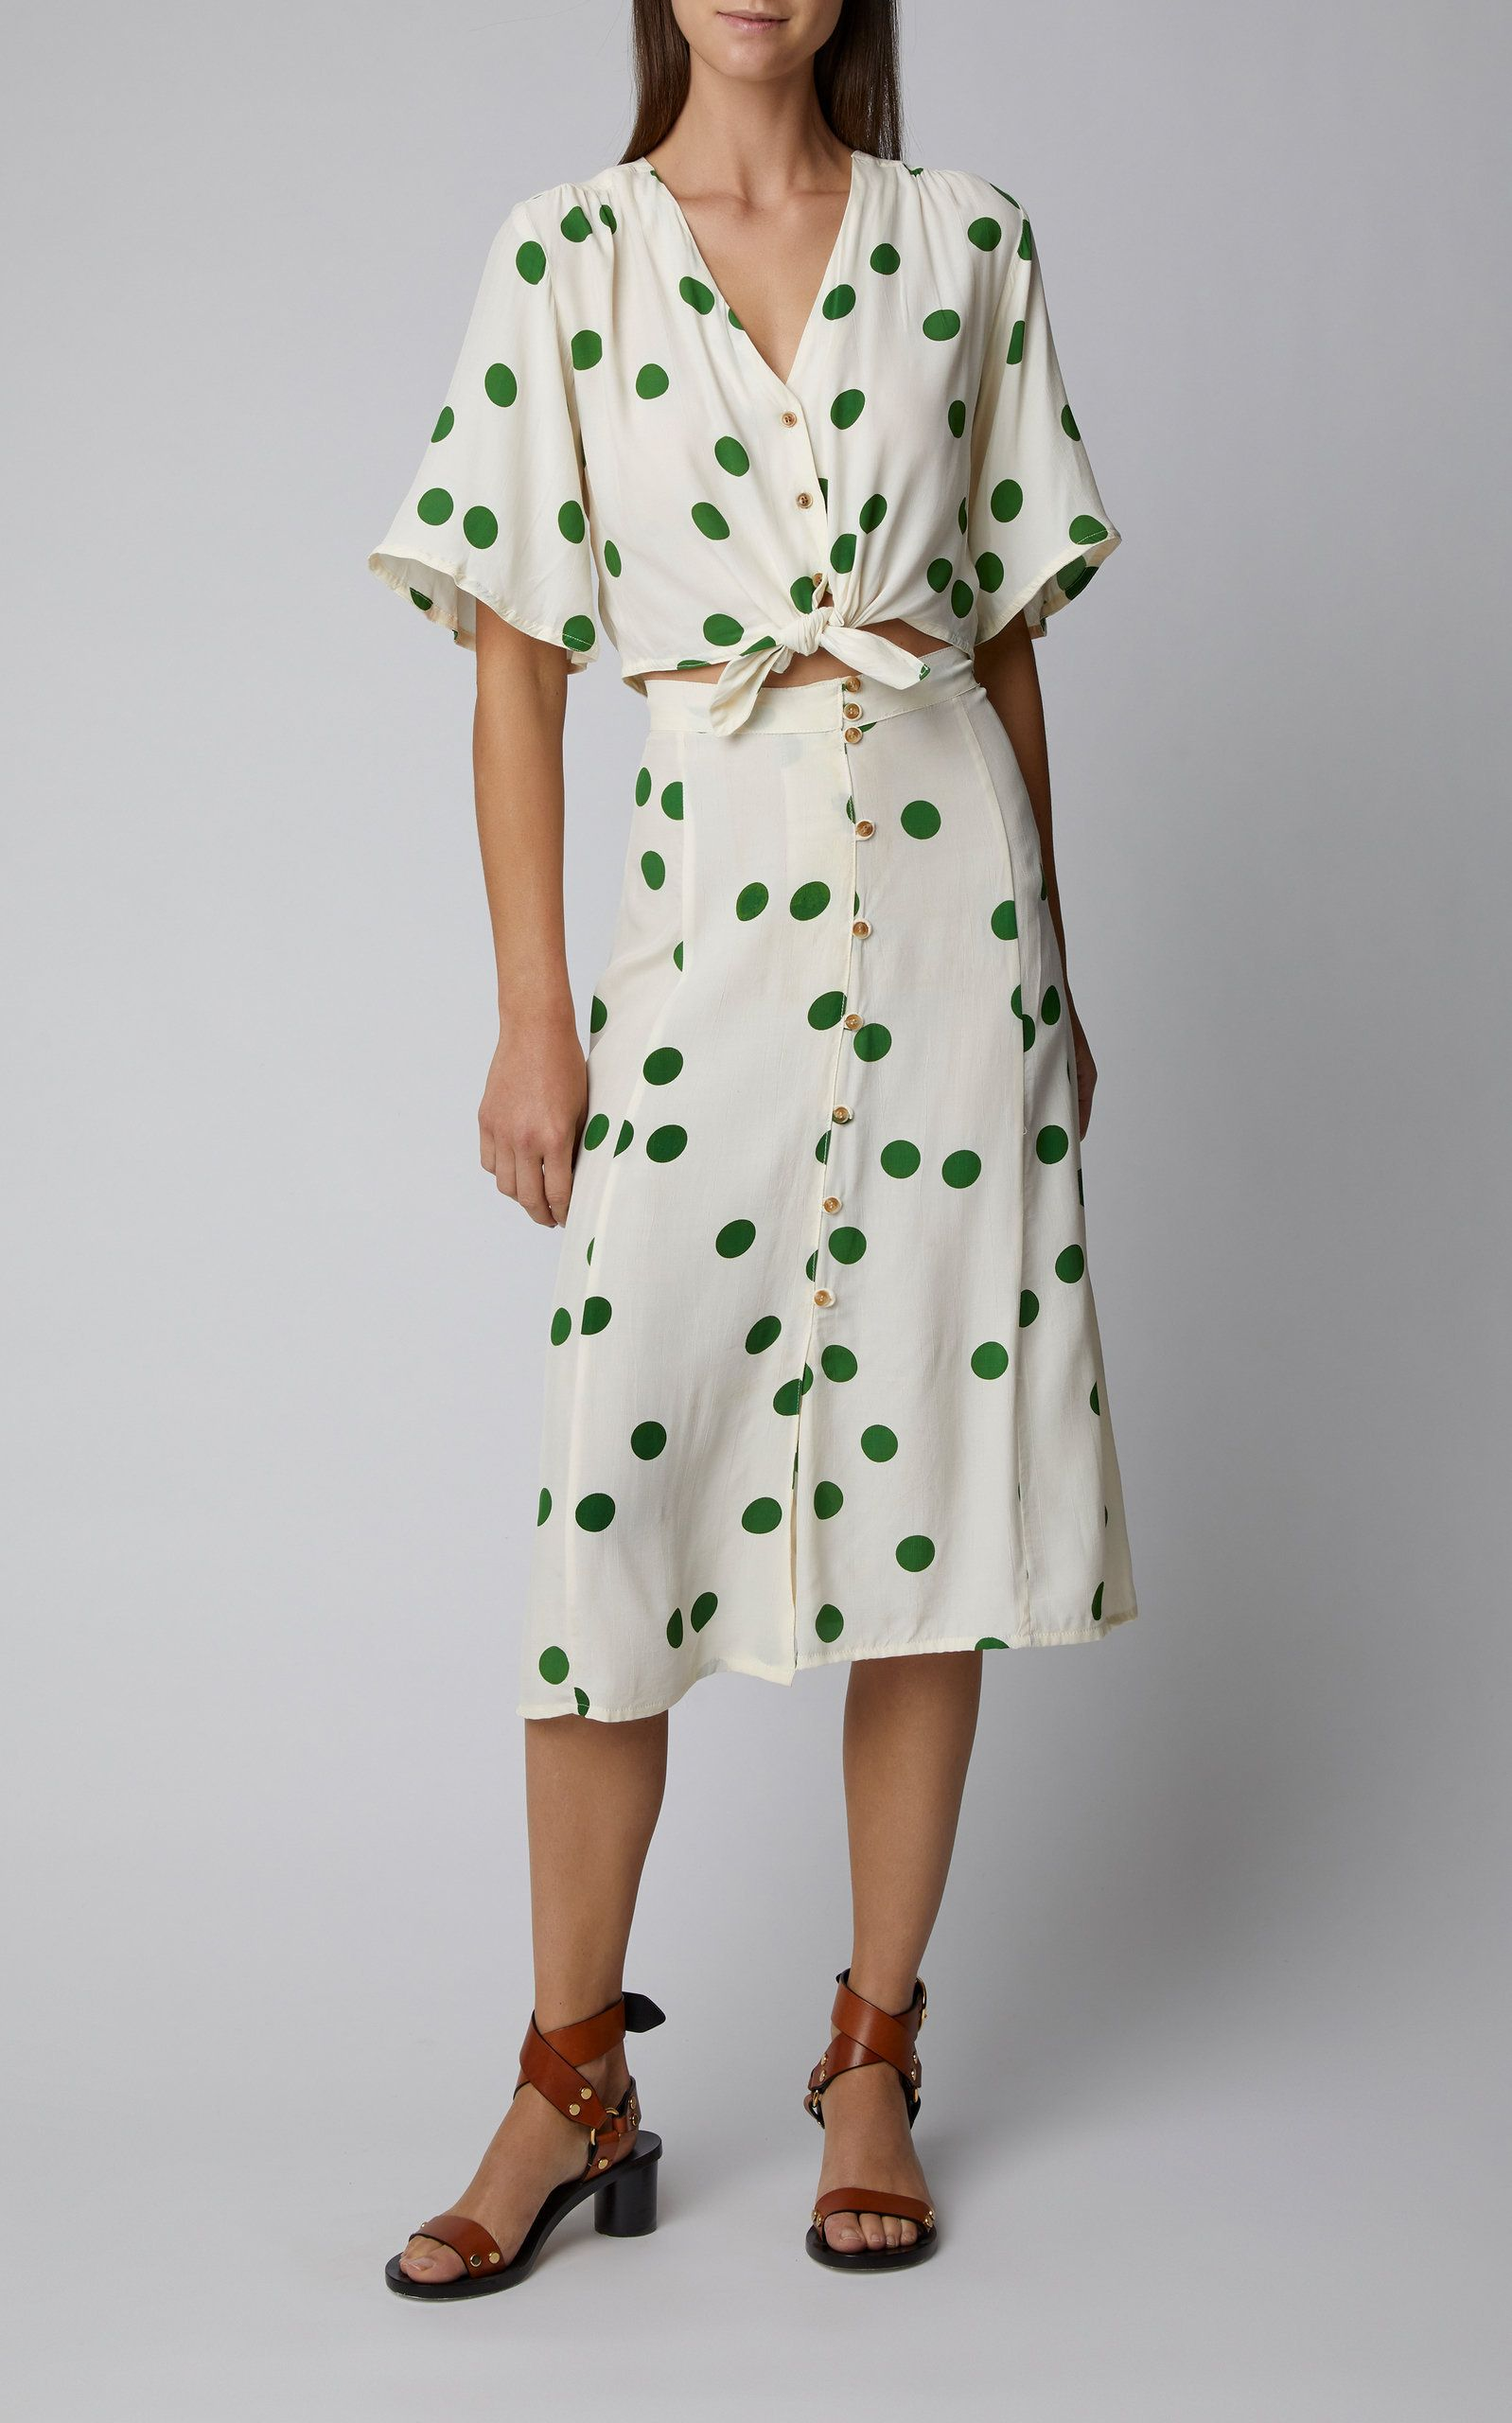 9d71355a51e Click product to zoom Long Sleeve Tops, Short Sleeves, Marni Dress,  Strapless Swimsuit